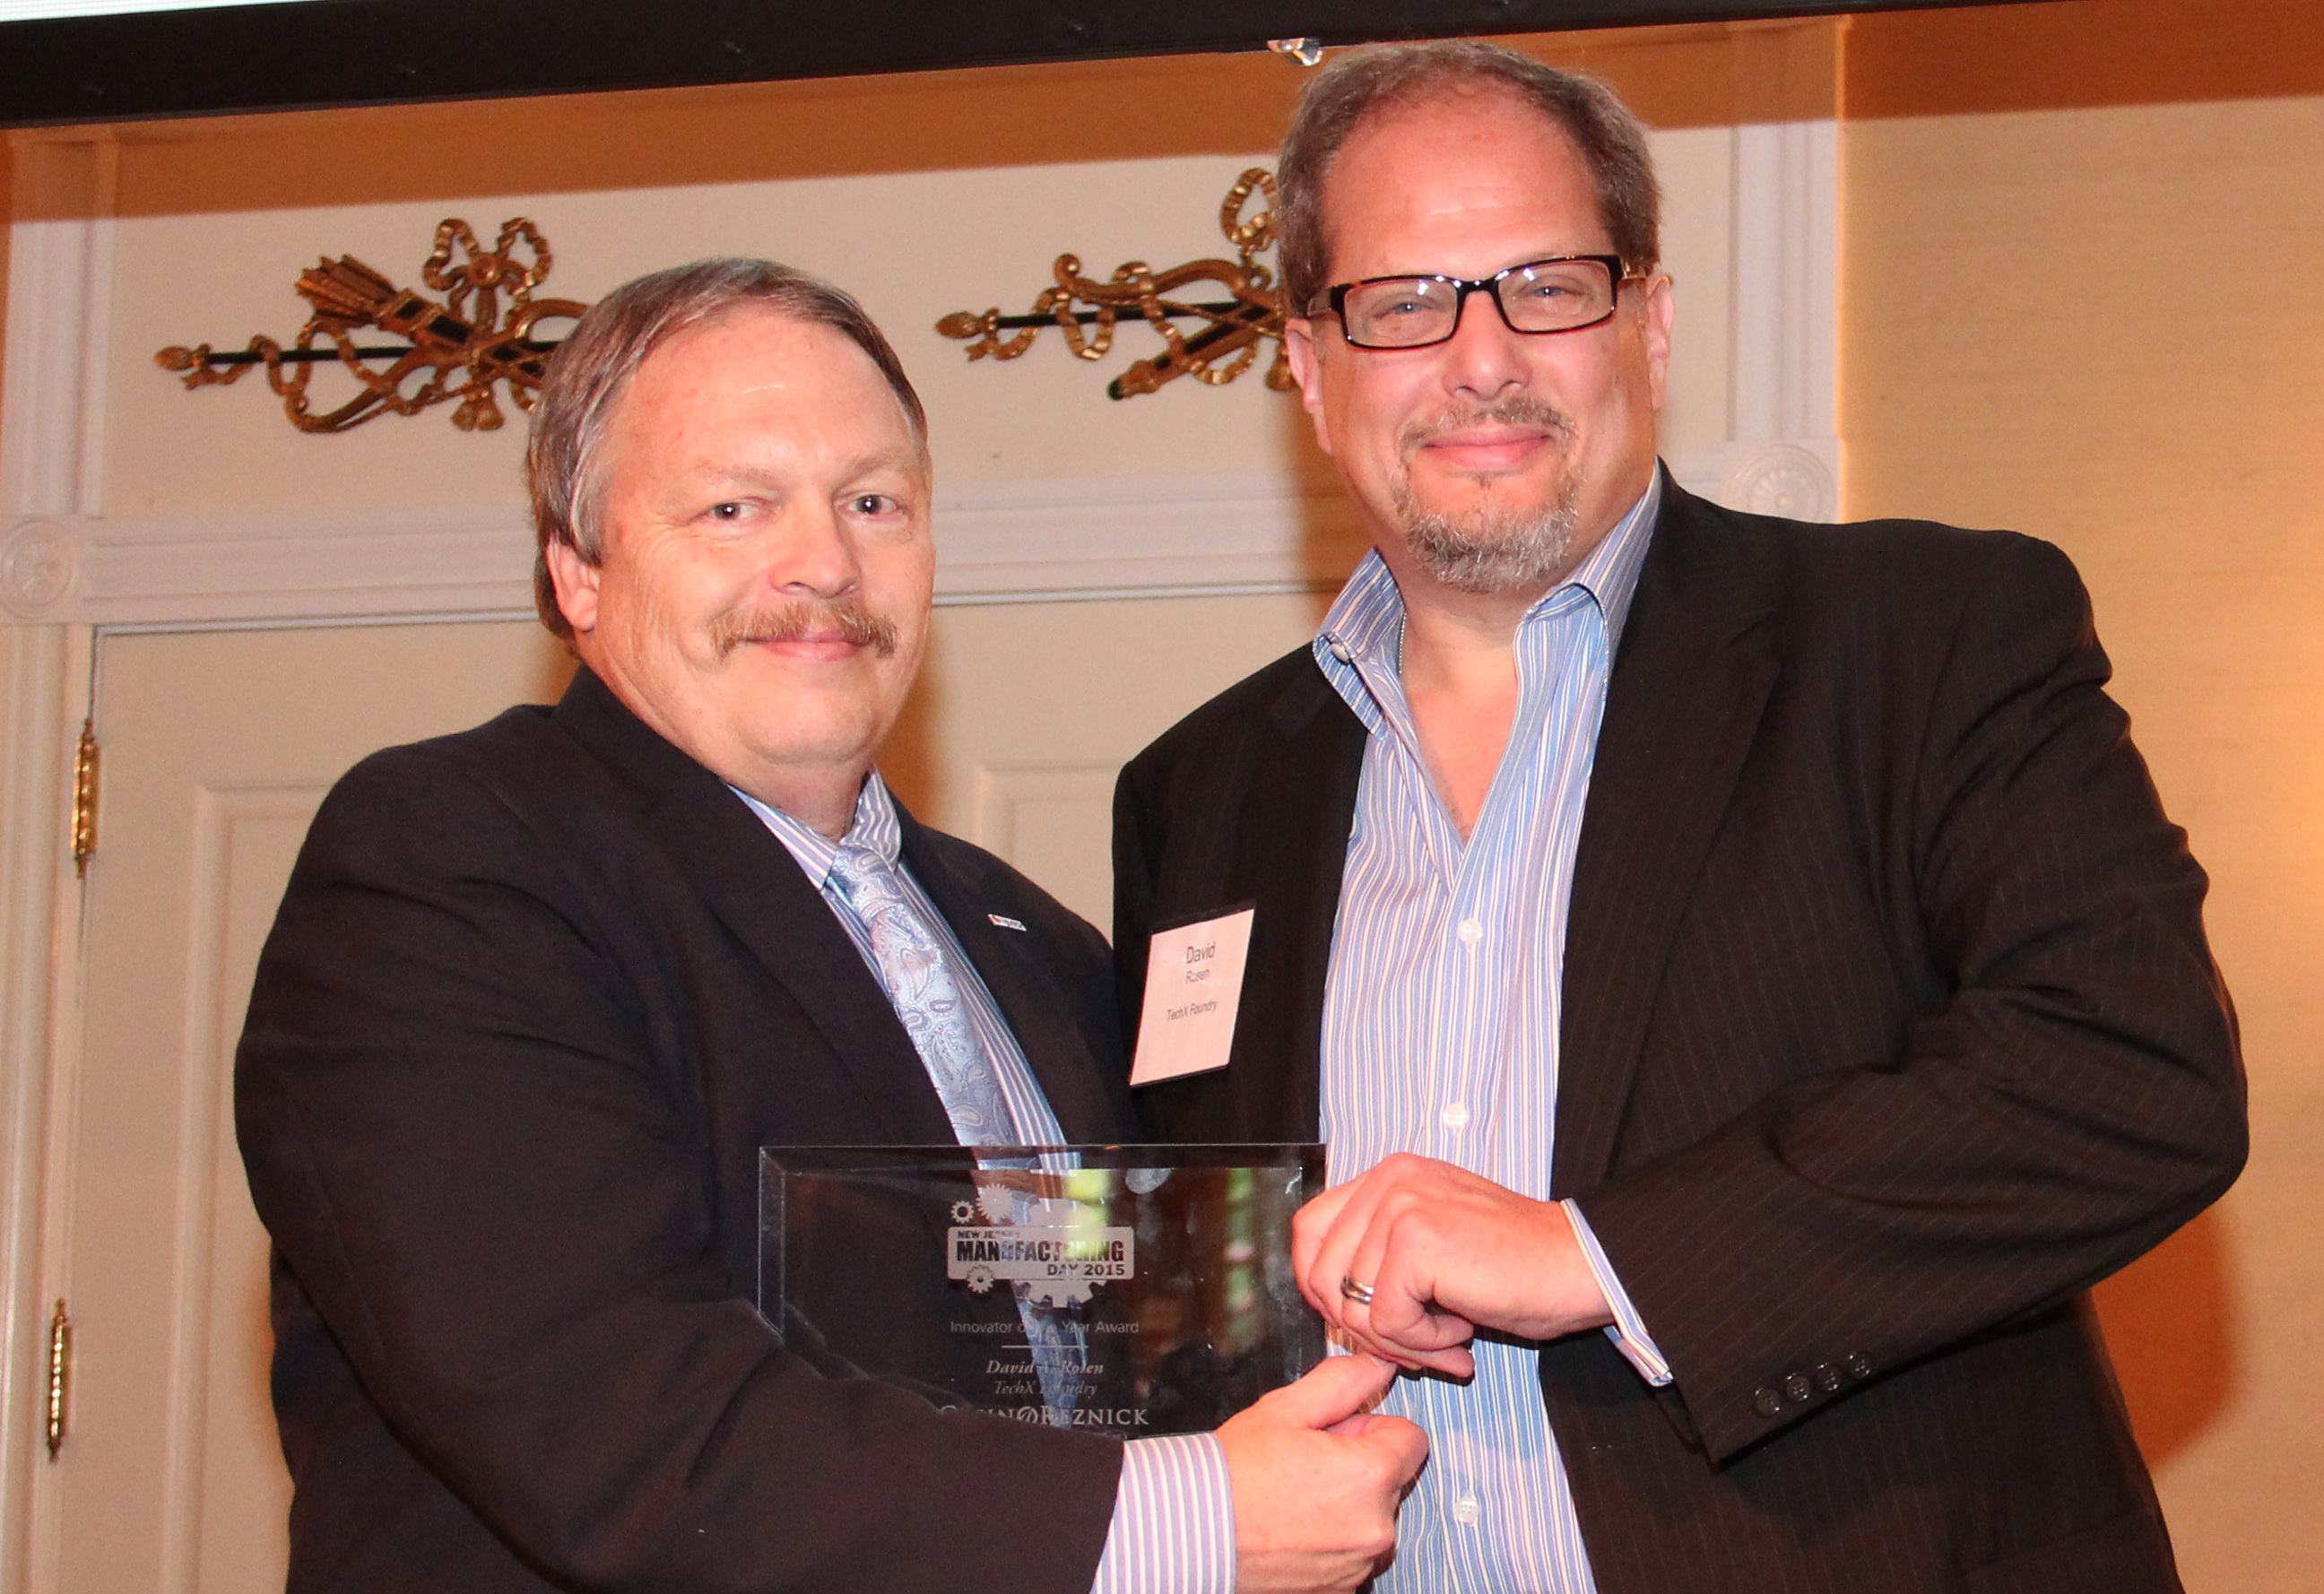 John Kennedy CEO NJMEP and David A. Rosen, Innovator of the Year 2015